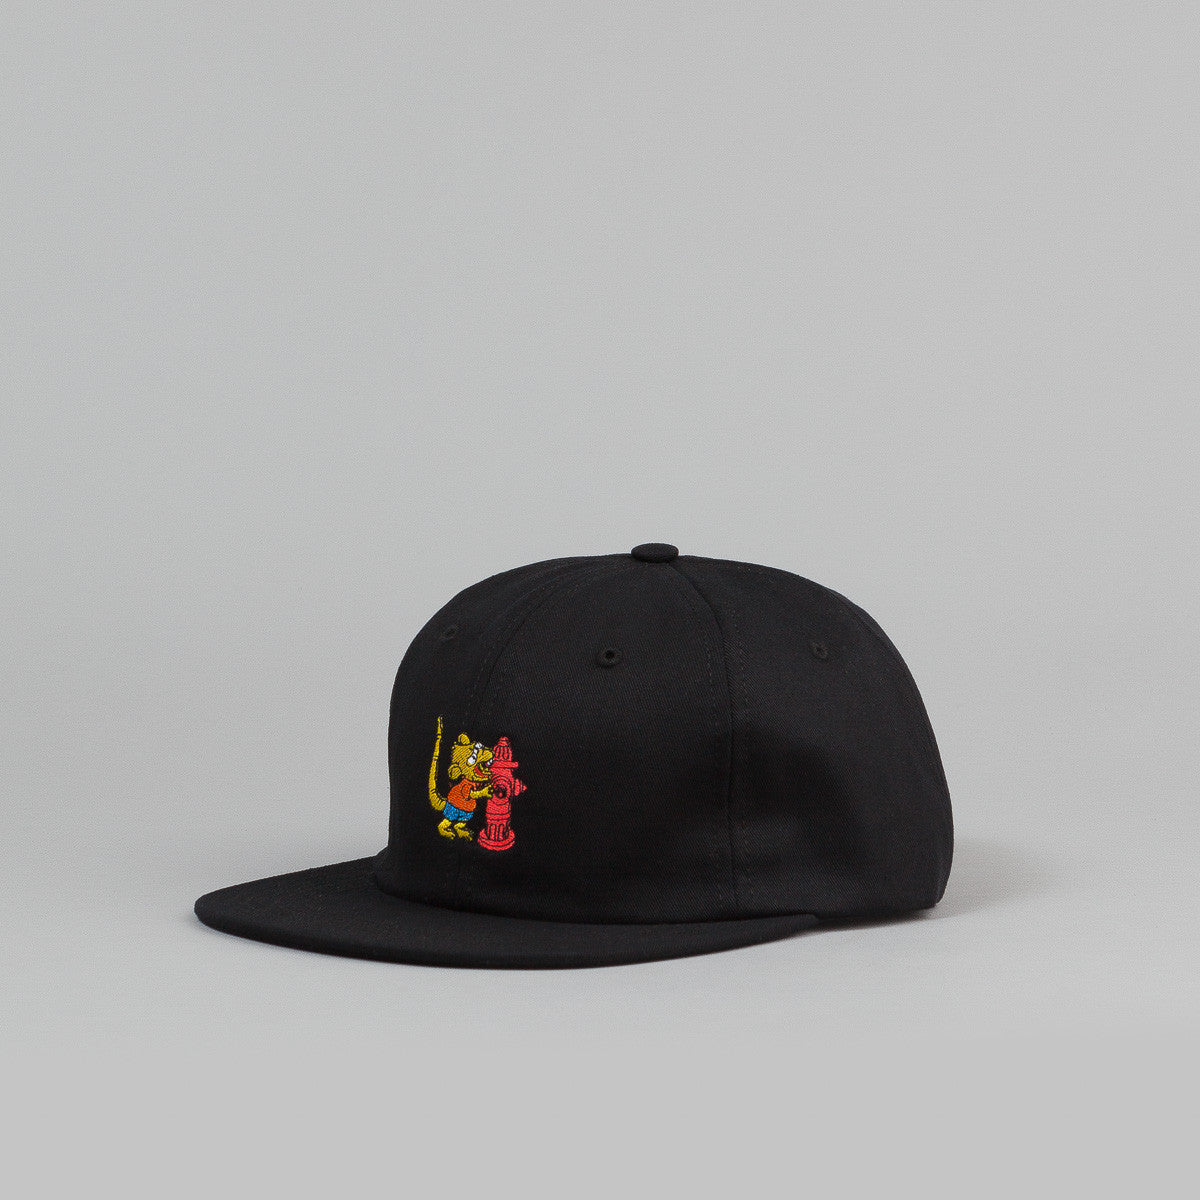 Butter Goods Rat Boy 6 Panel Cap